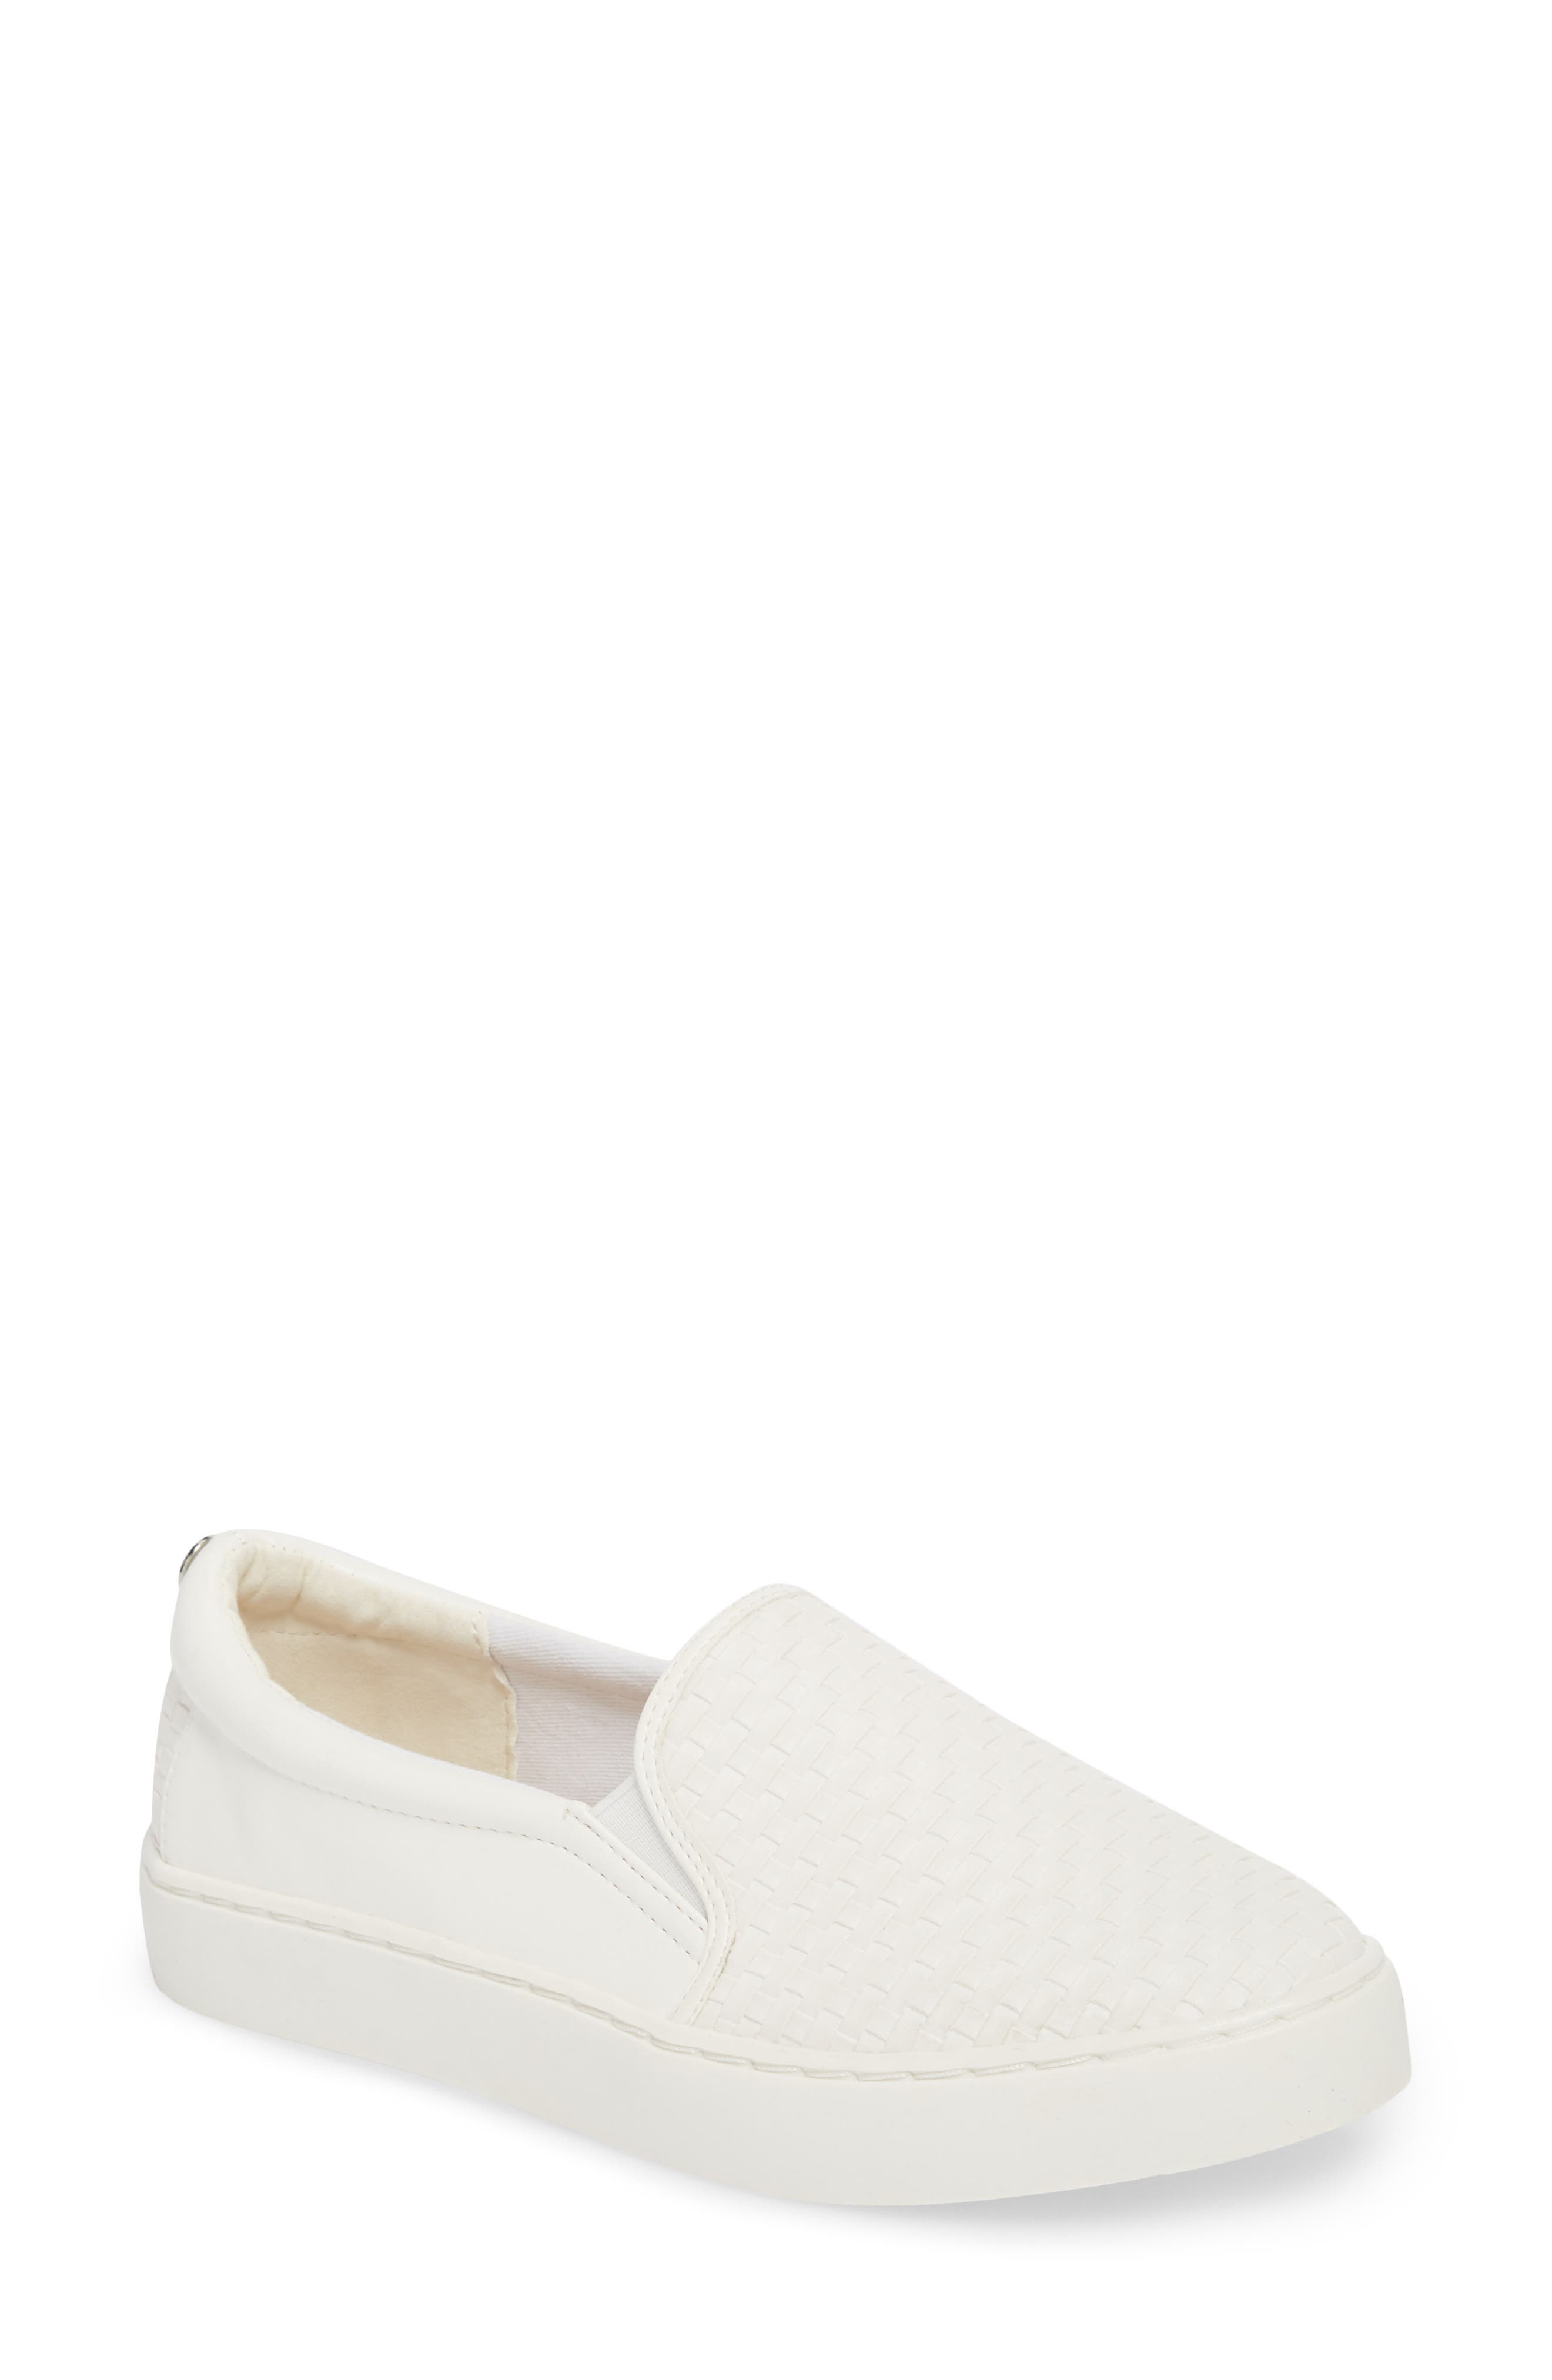 Taylor Slip-On Sport Sneakers,                             Main thumbnail 1, color,                             100